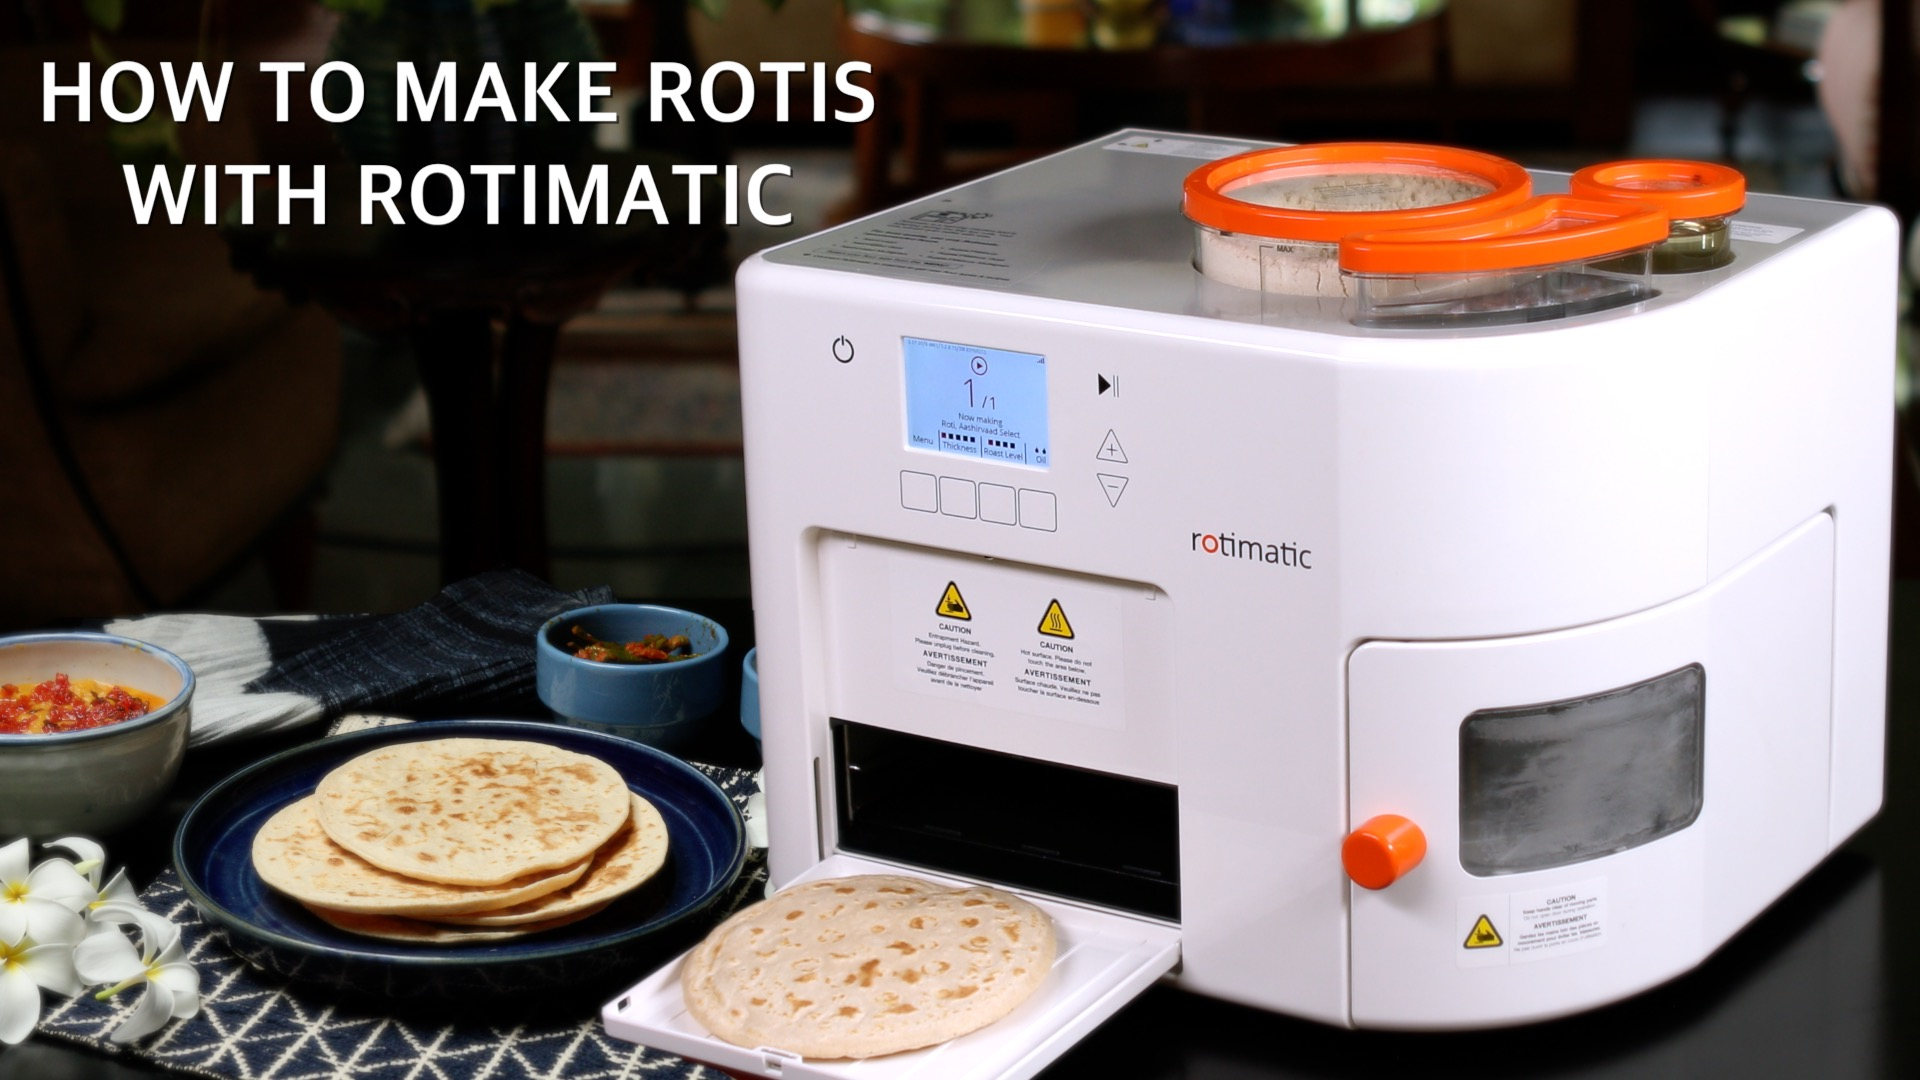 How to make Rotis with Rotimatic – The Automatic Roti Maker